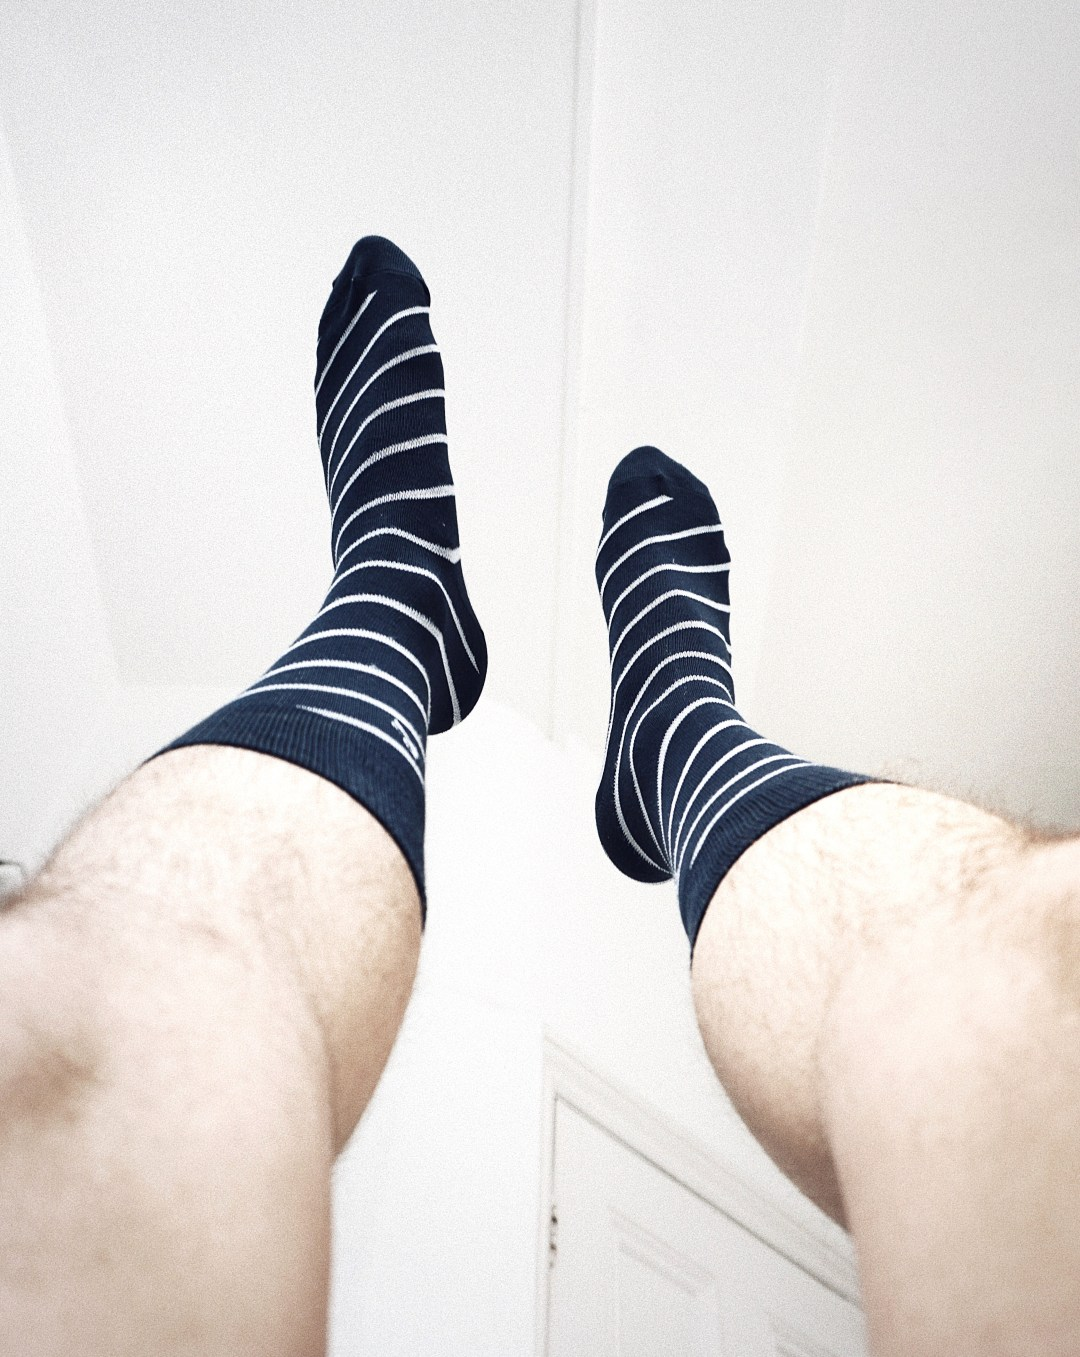 Male Inspiration hamper from Social Network Solutions. Navy/White Striped socks from Tied Together. Blog by Skirmantas Petraitis.